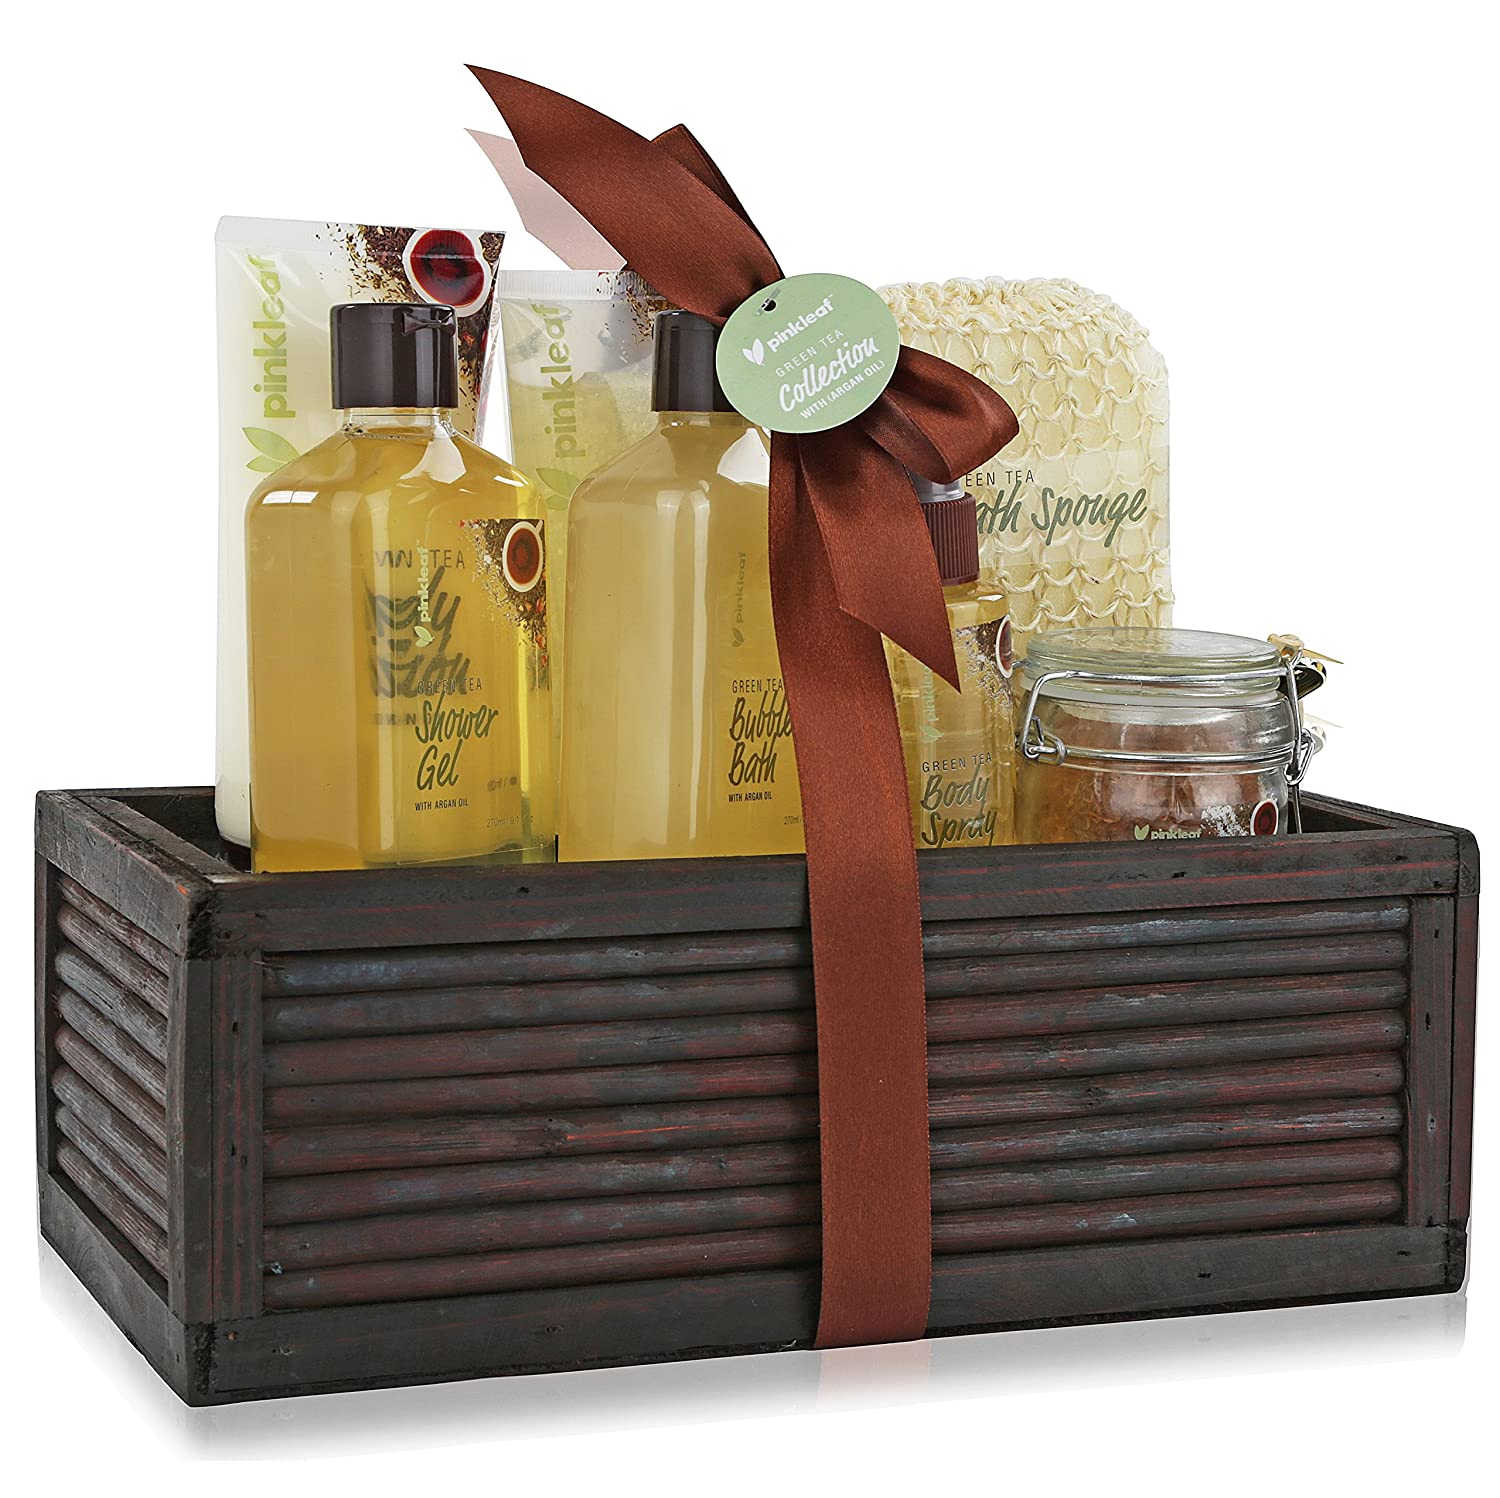 Pinkleaf Green Tea Argan Oil Bamboo Spa Bath Gift Set, Spa Basket, PL-5274